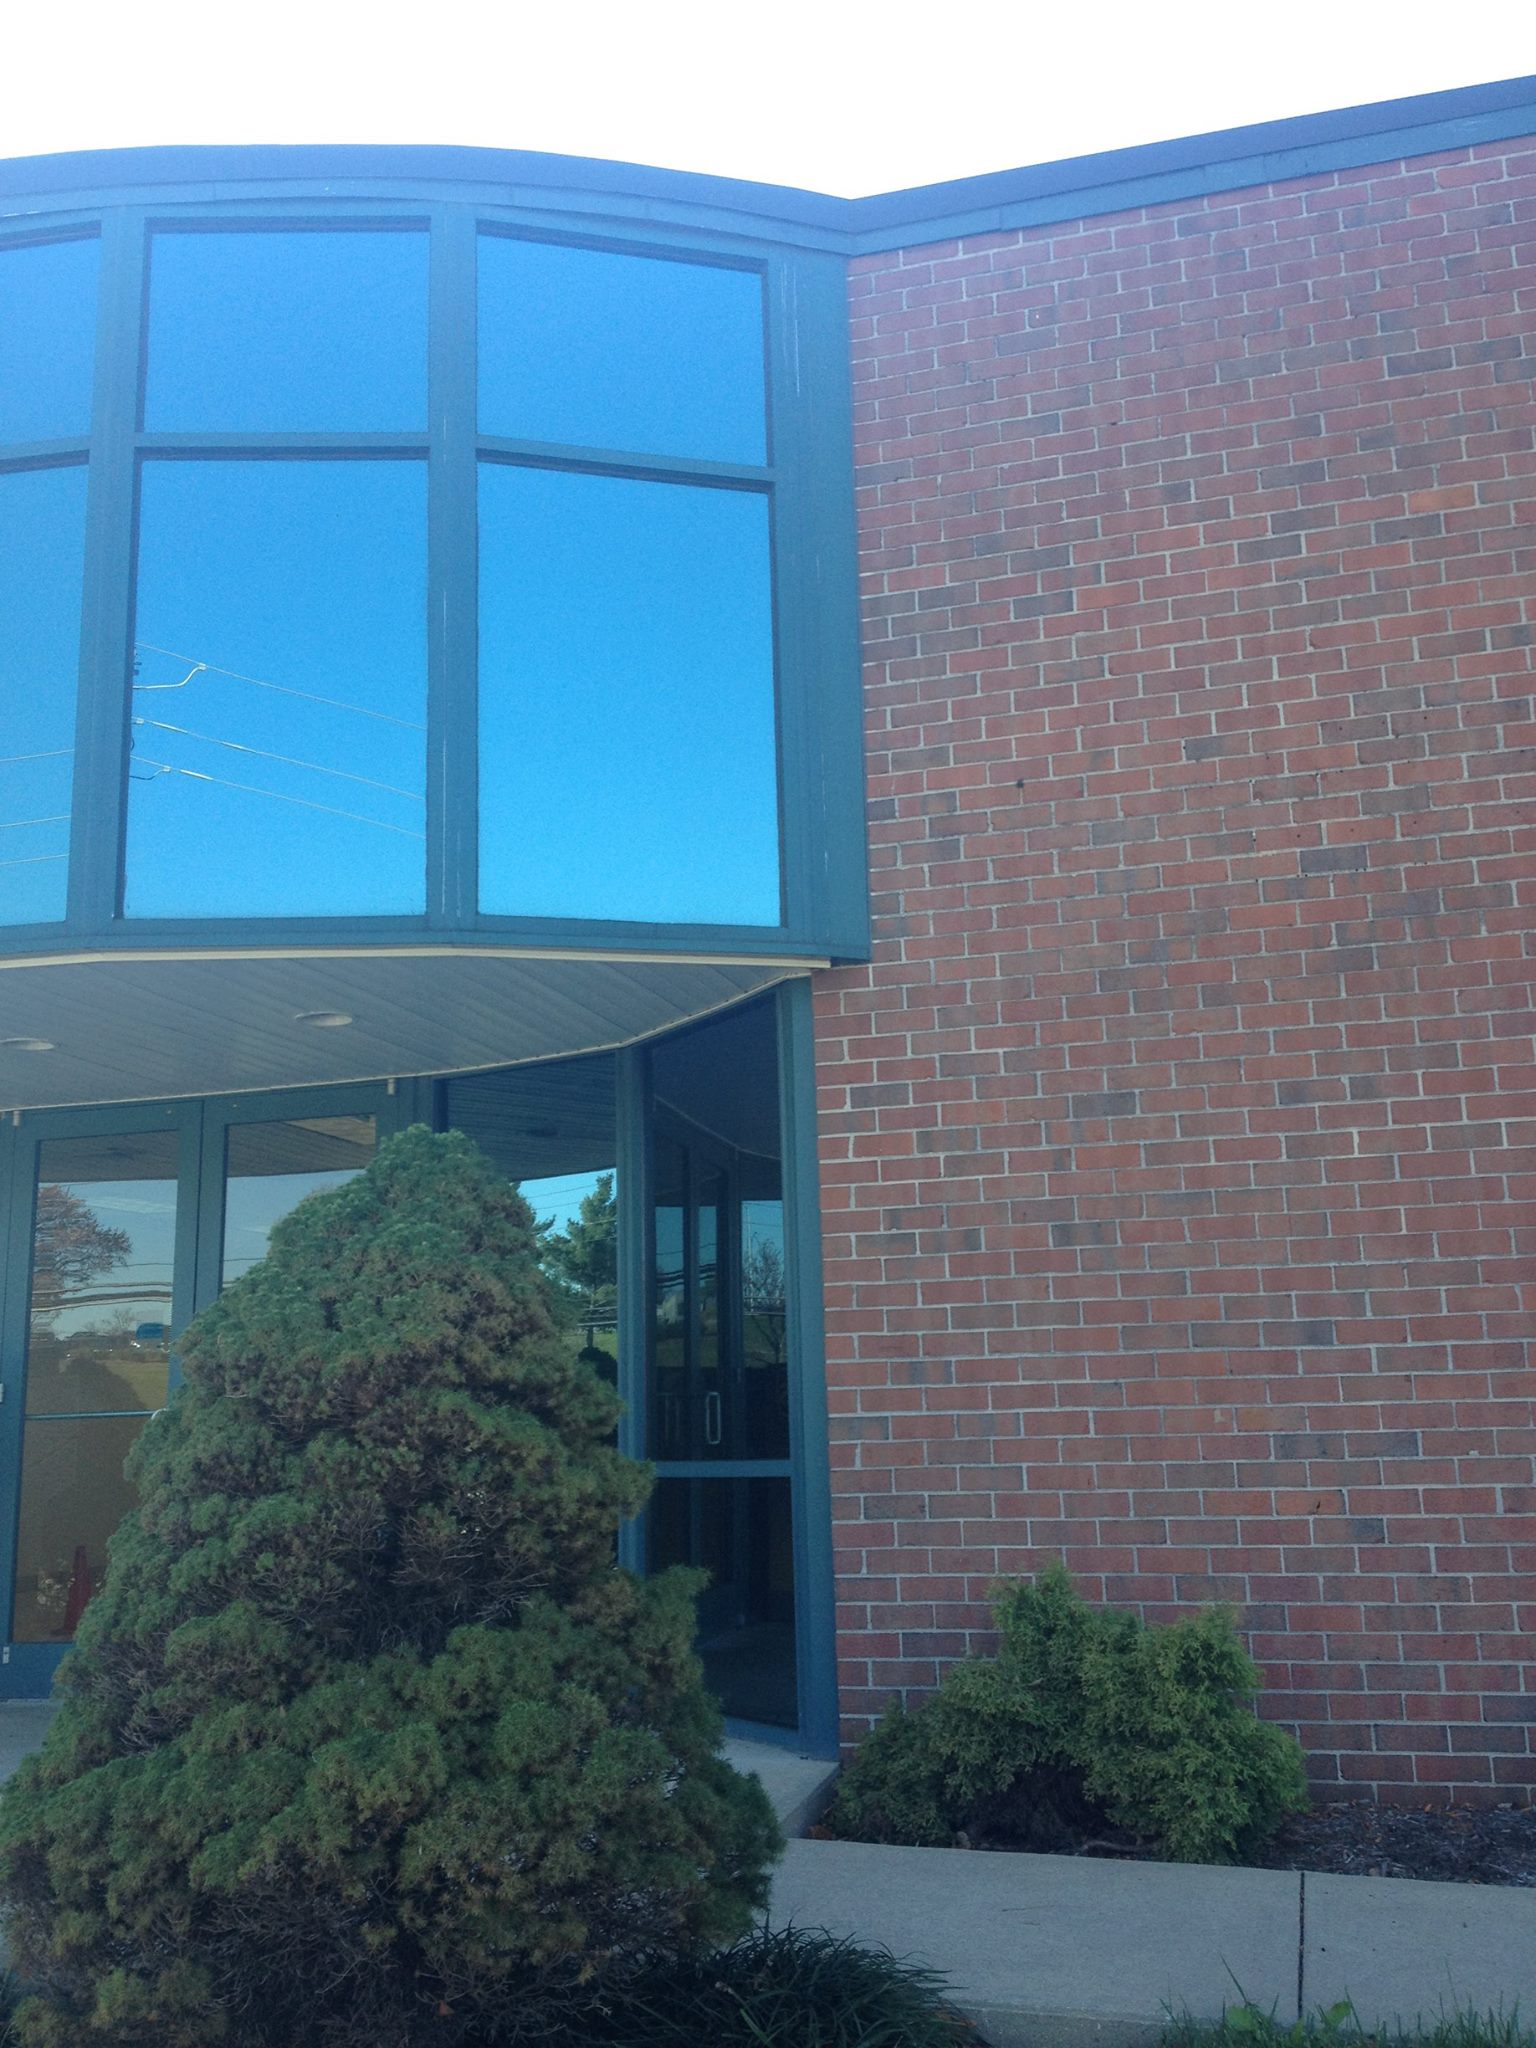 Bradleigh Applications, Inc. construction at 1508 Woodlawn Drive (EIFS over Brick)